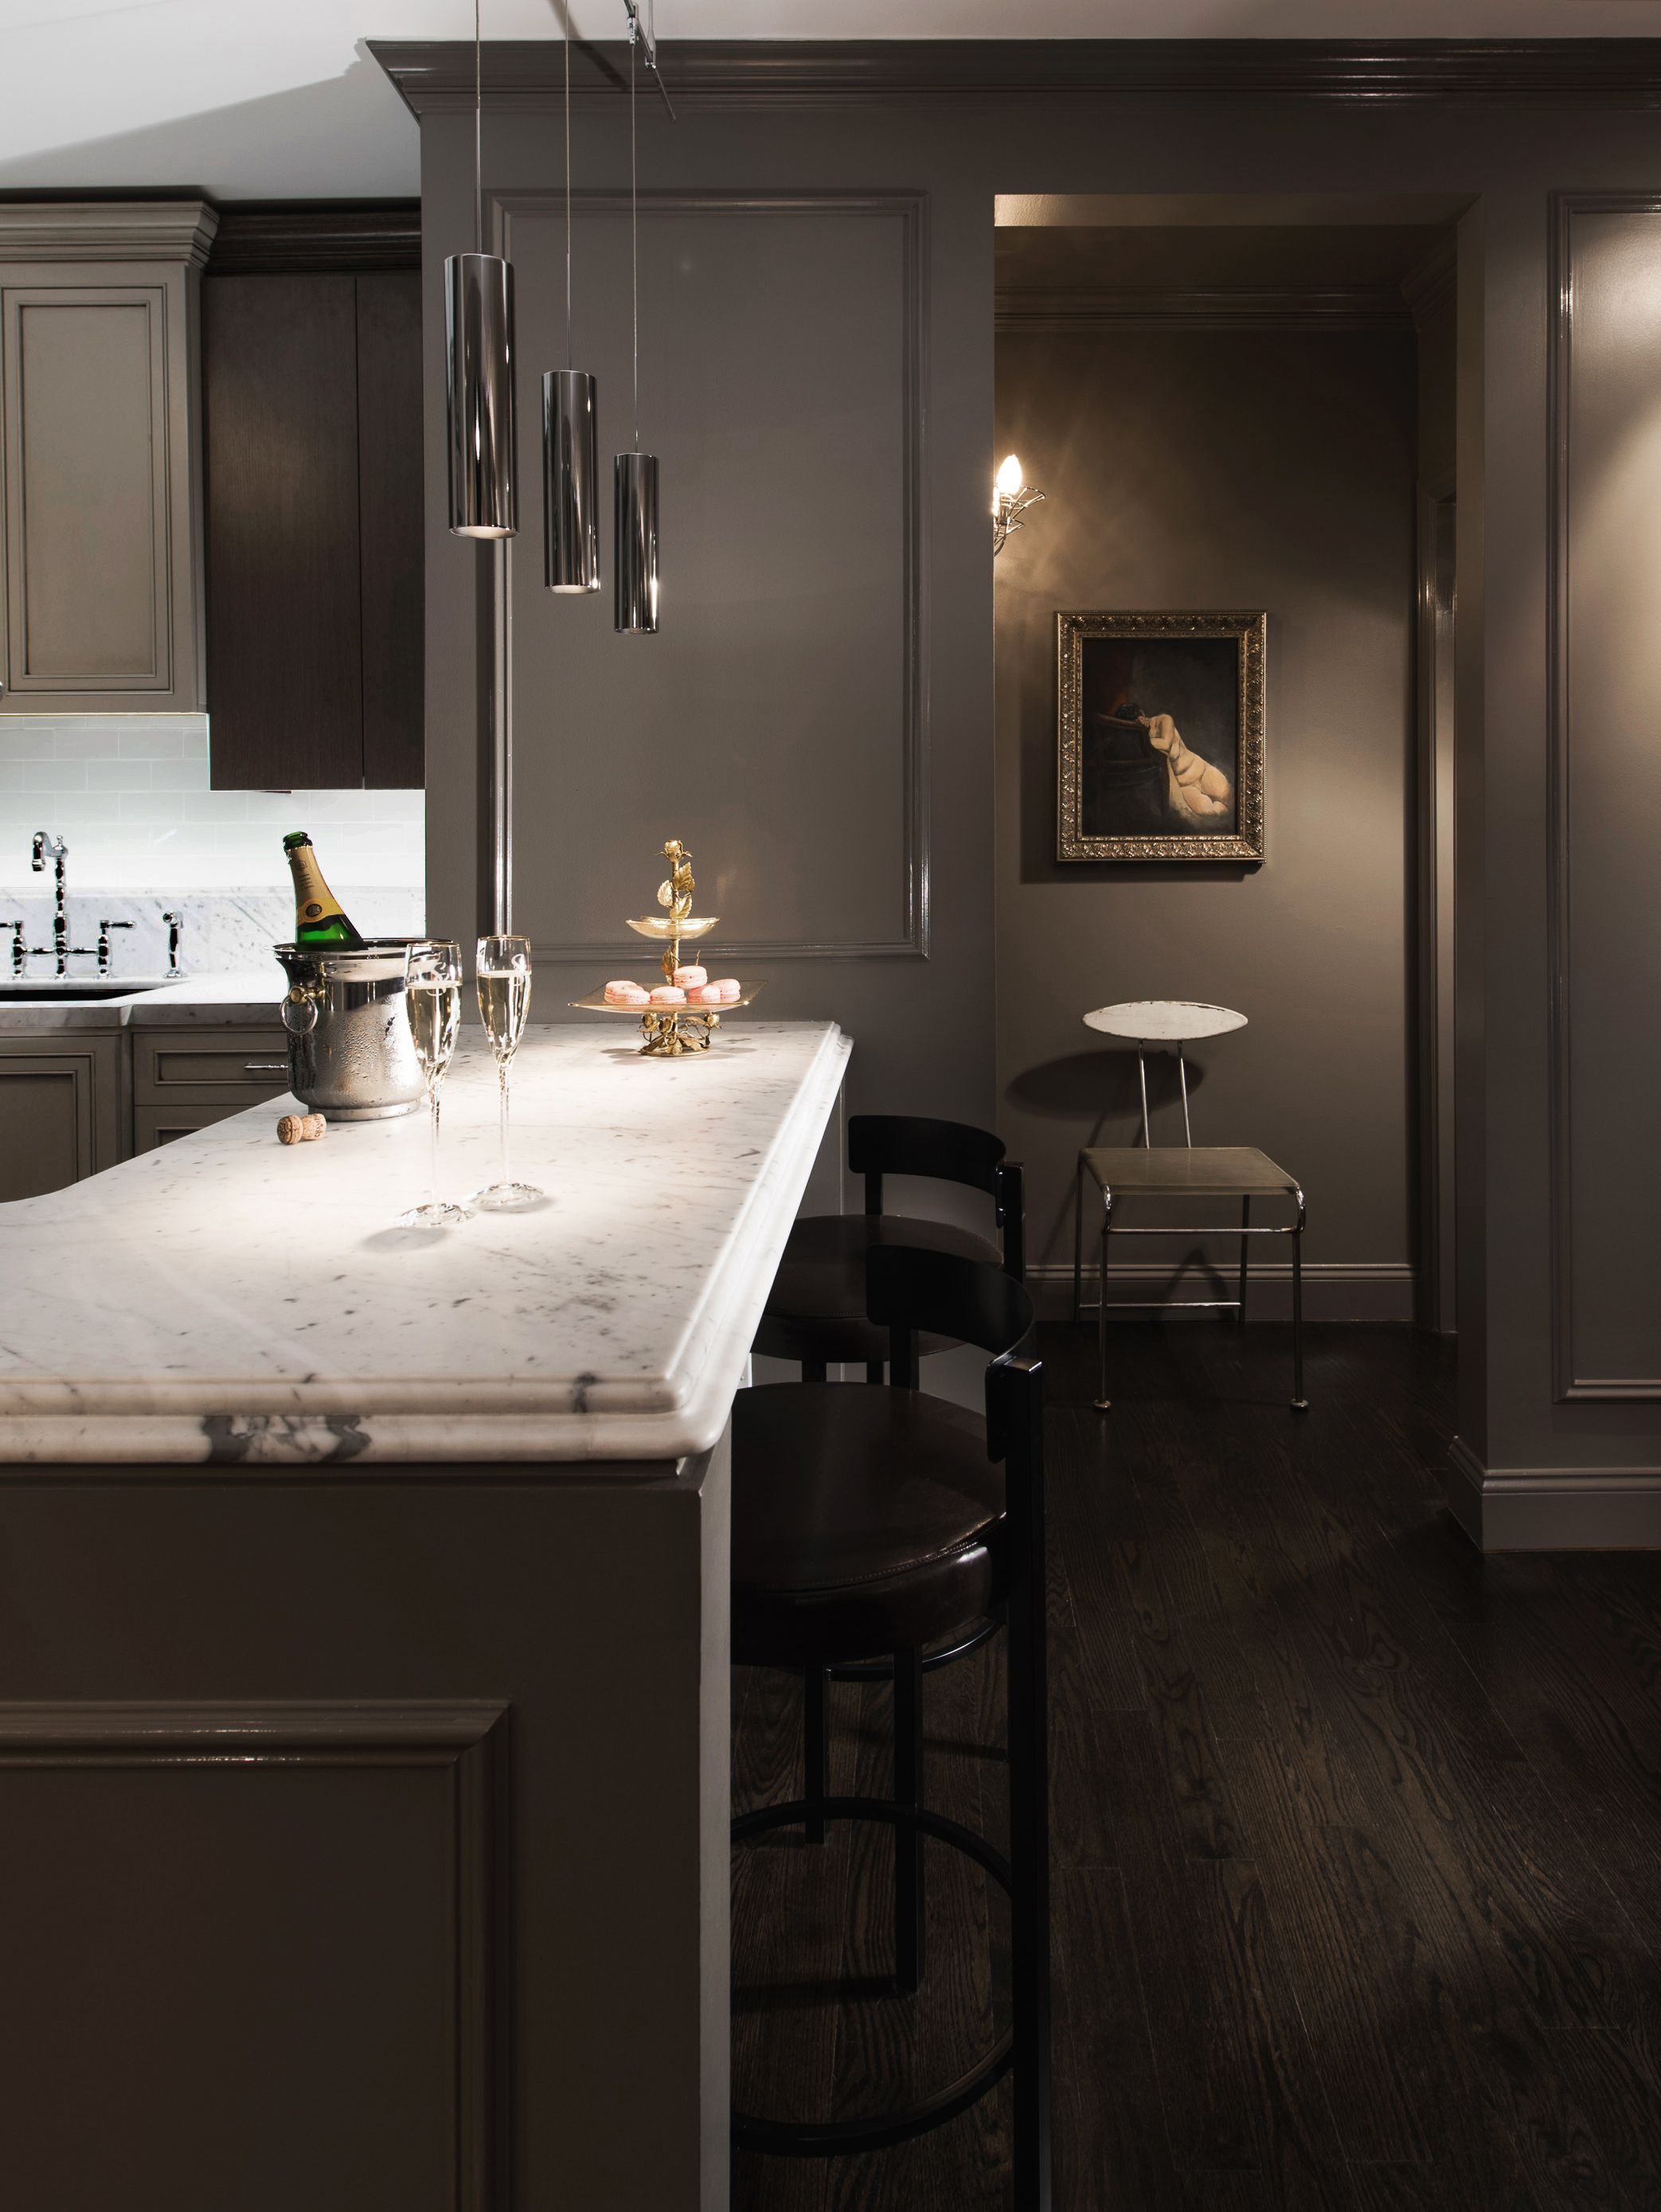 Stephen Young Design  Gold Coast Chicago  Kitchen  Photography Gorgeous Chicago Kitchen Design Decorating Design